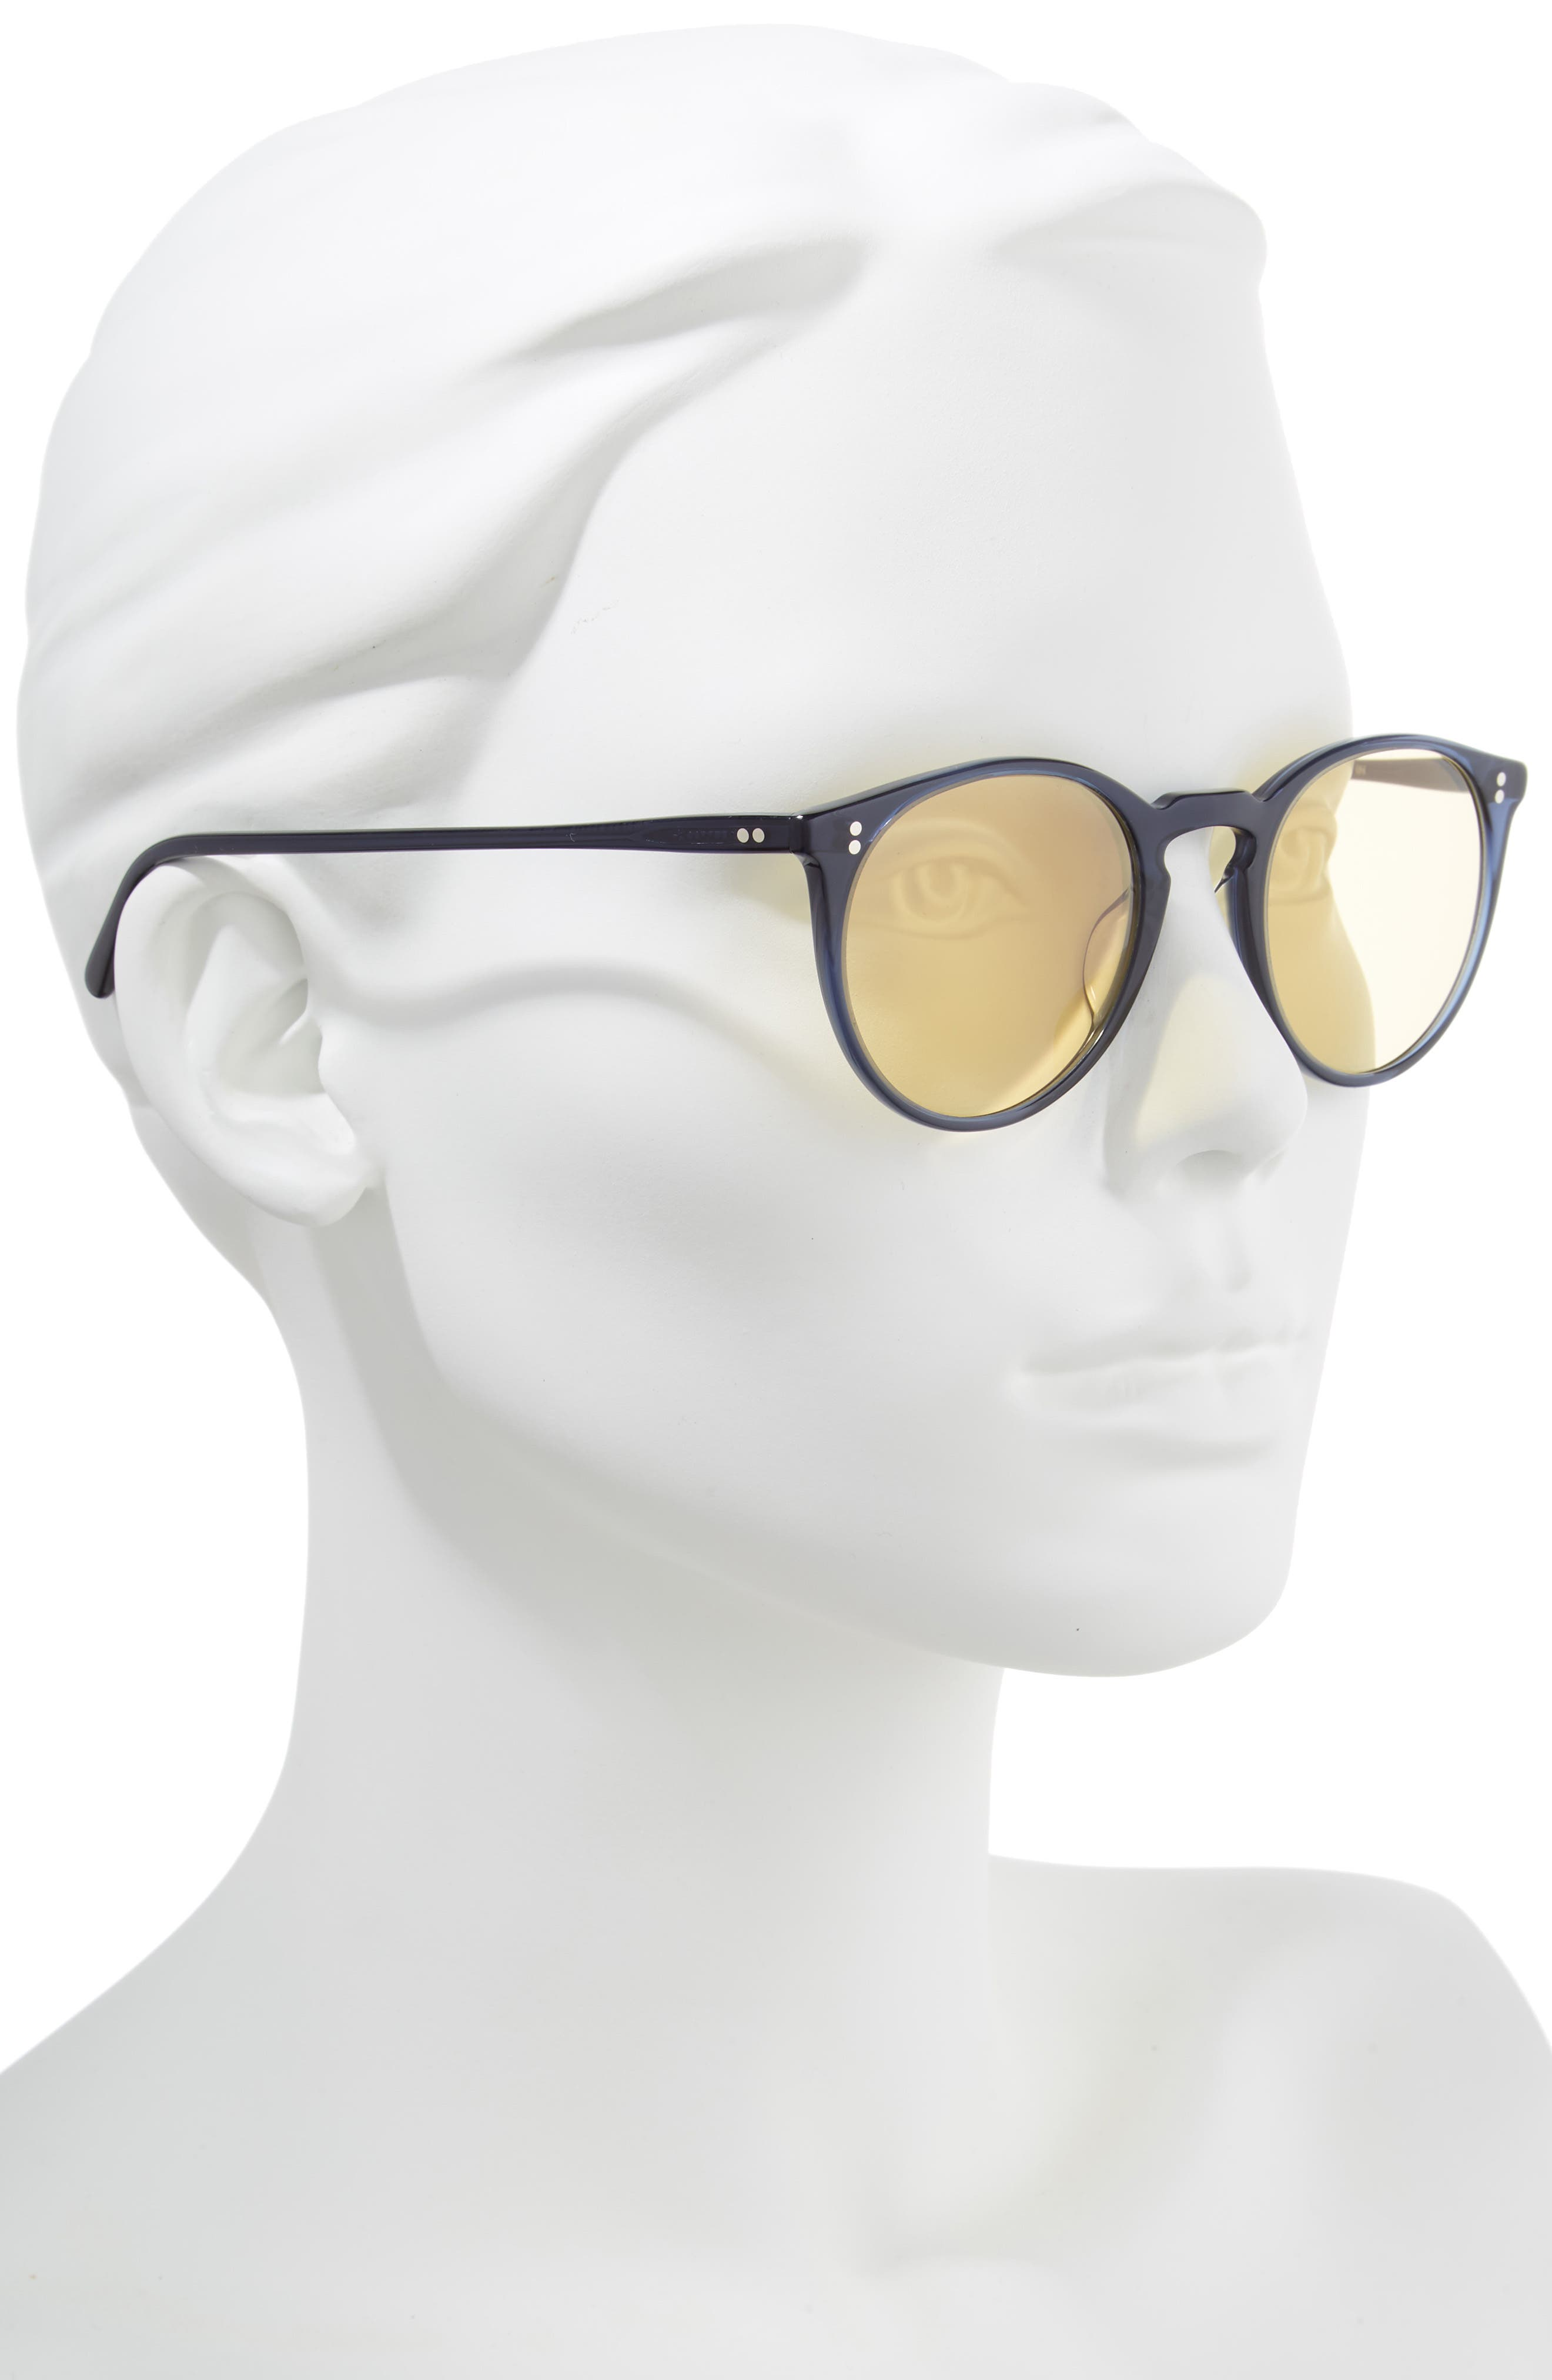 O'Malley 48mm Round Sunglasses,                             Alternate thumbnail 2, color,                             Navy